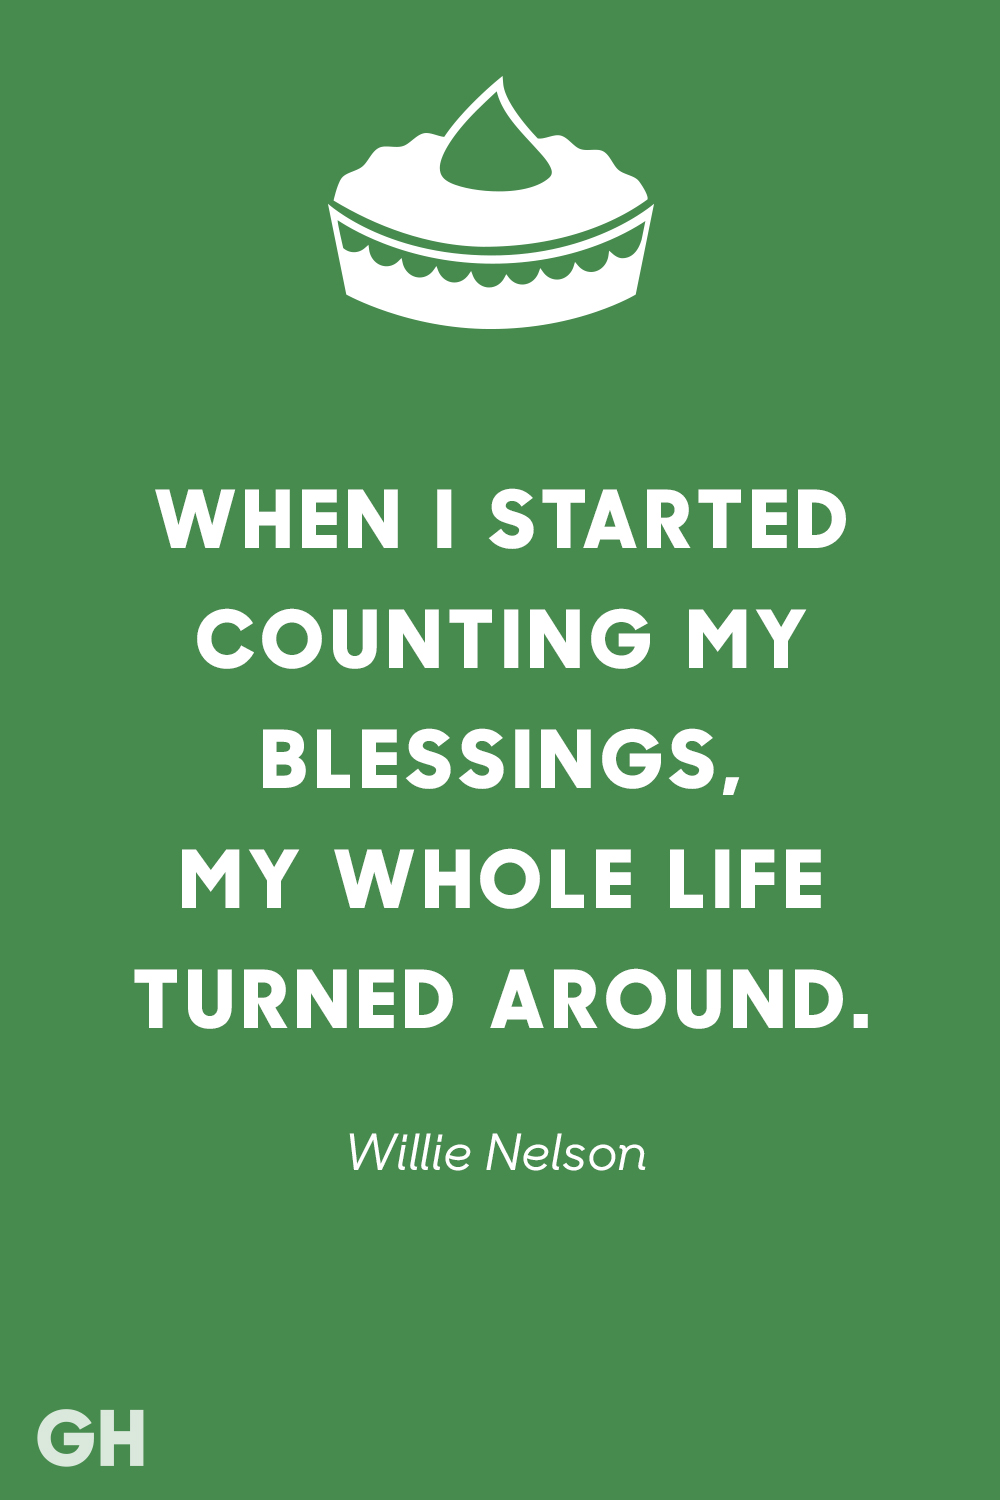 Profound Quotes About Life 15 Best Thanksgiving Quotes  Inspirational And Funny Quotes About